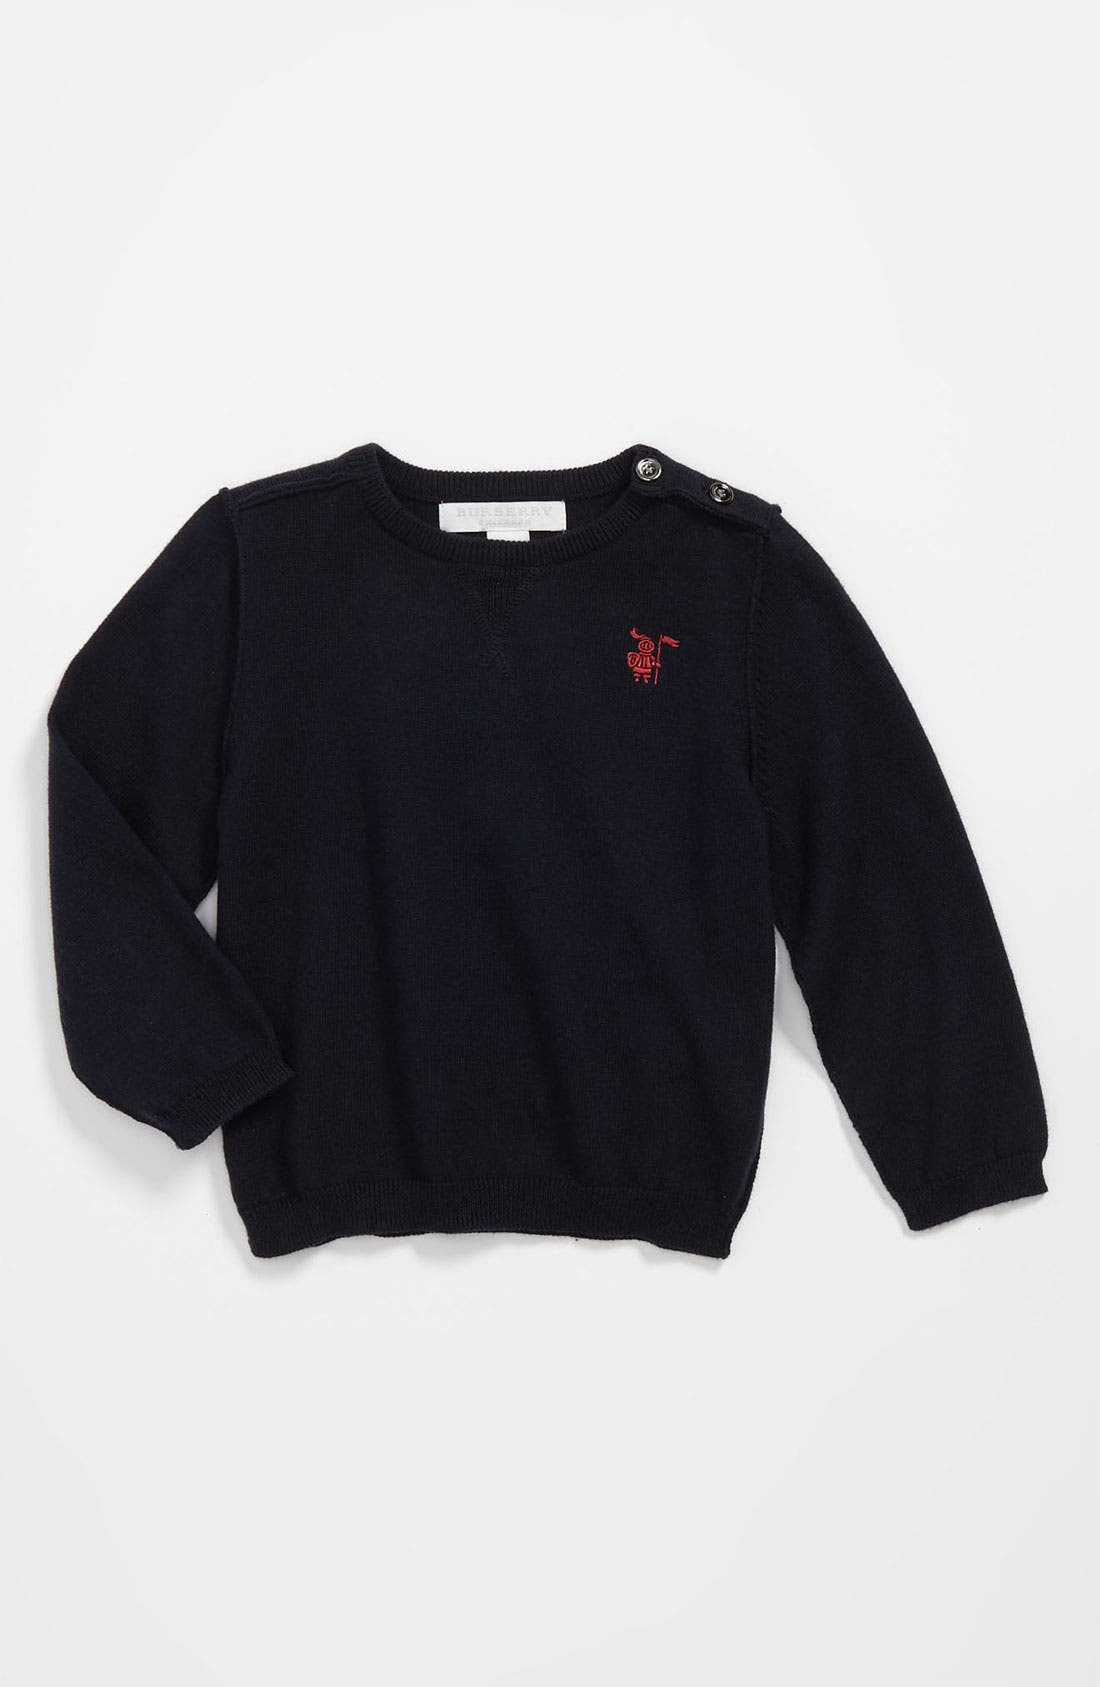 Alternate Image 1 Selected - Burberry 'Mini Kane' Sweater (Toddler)